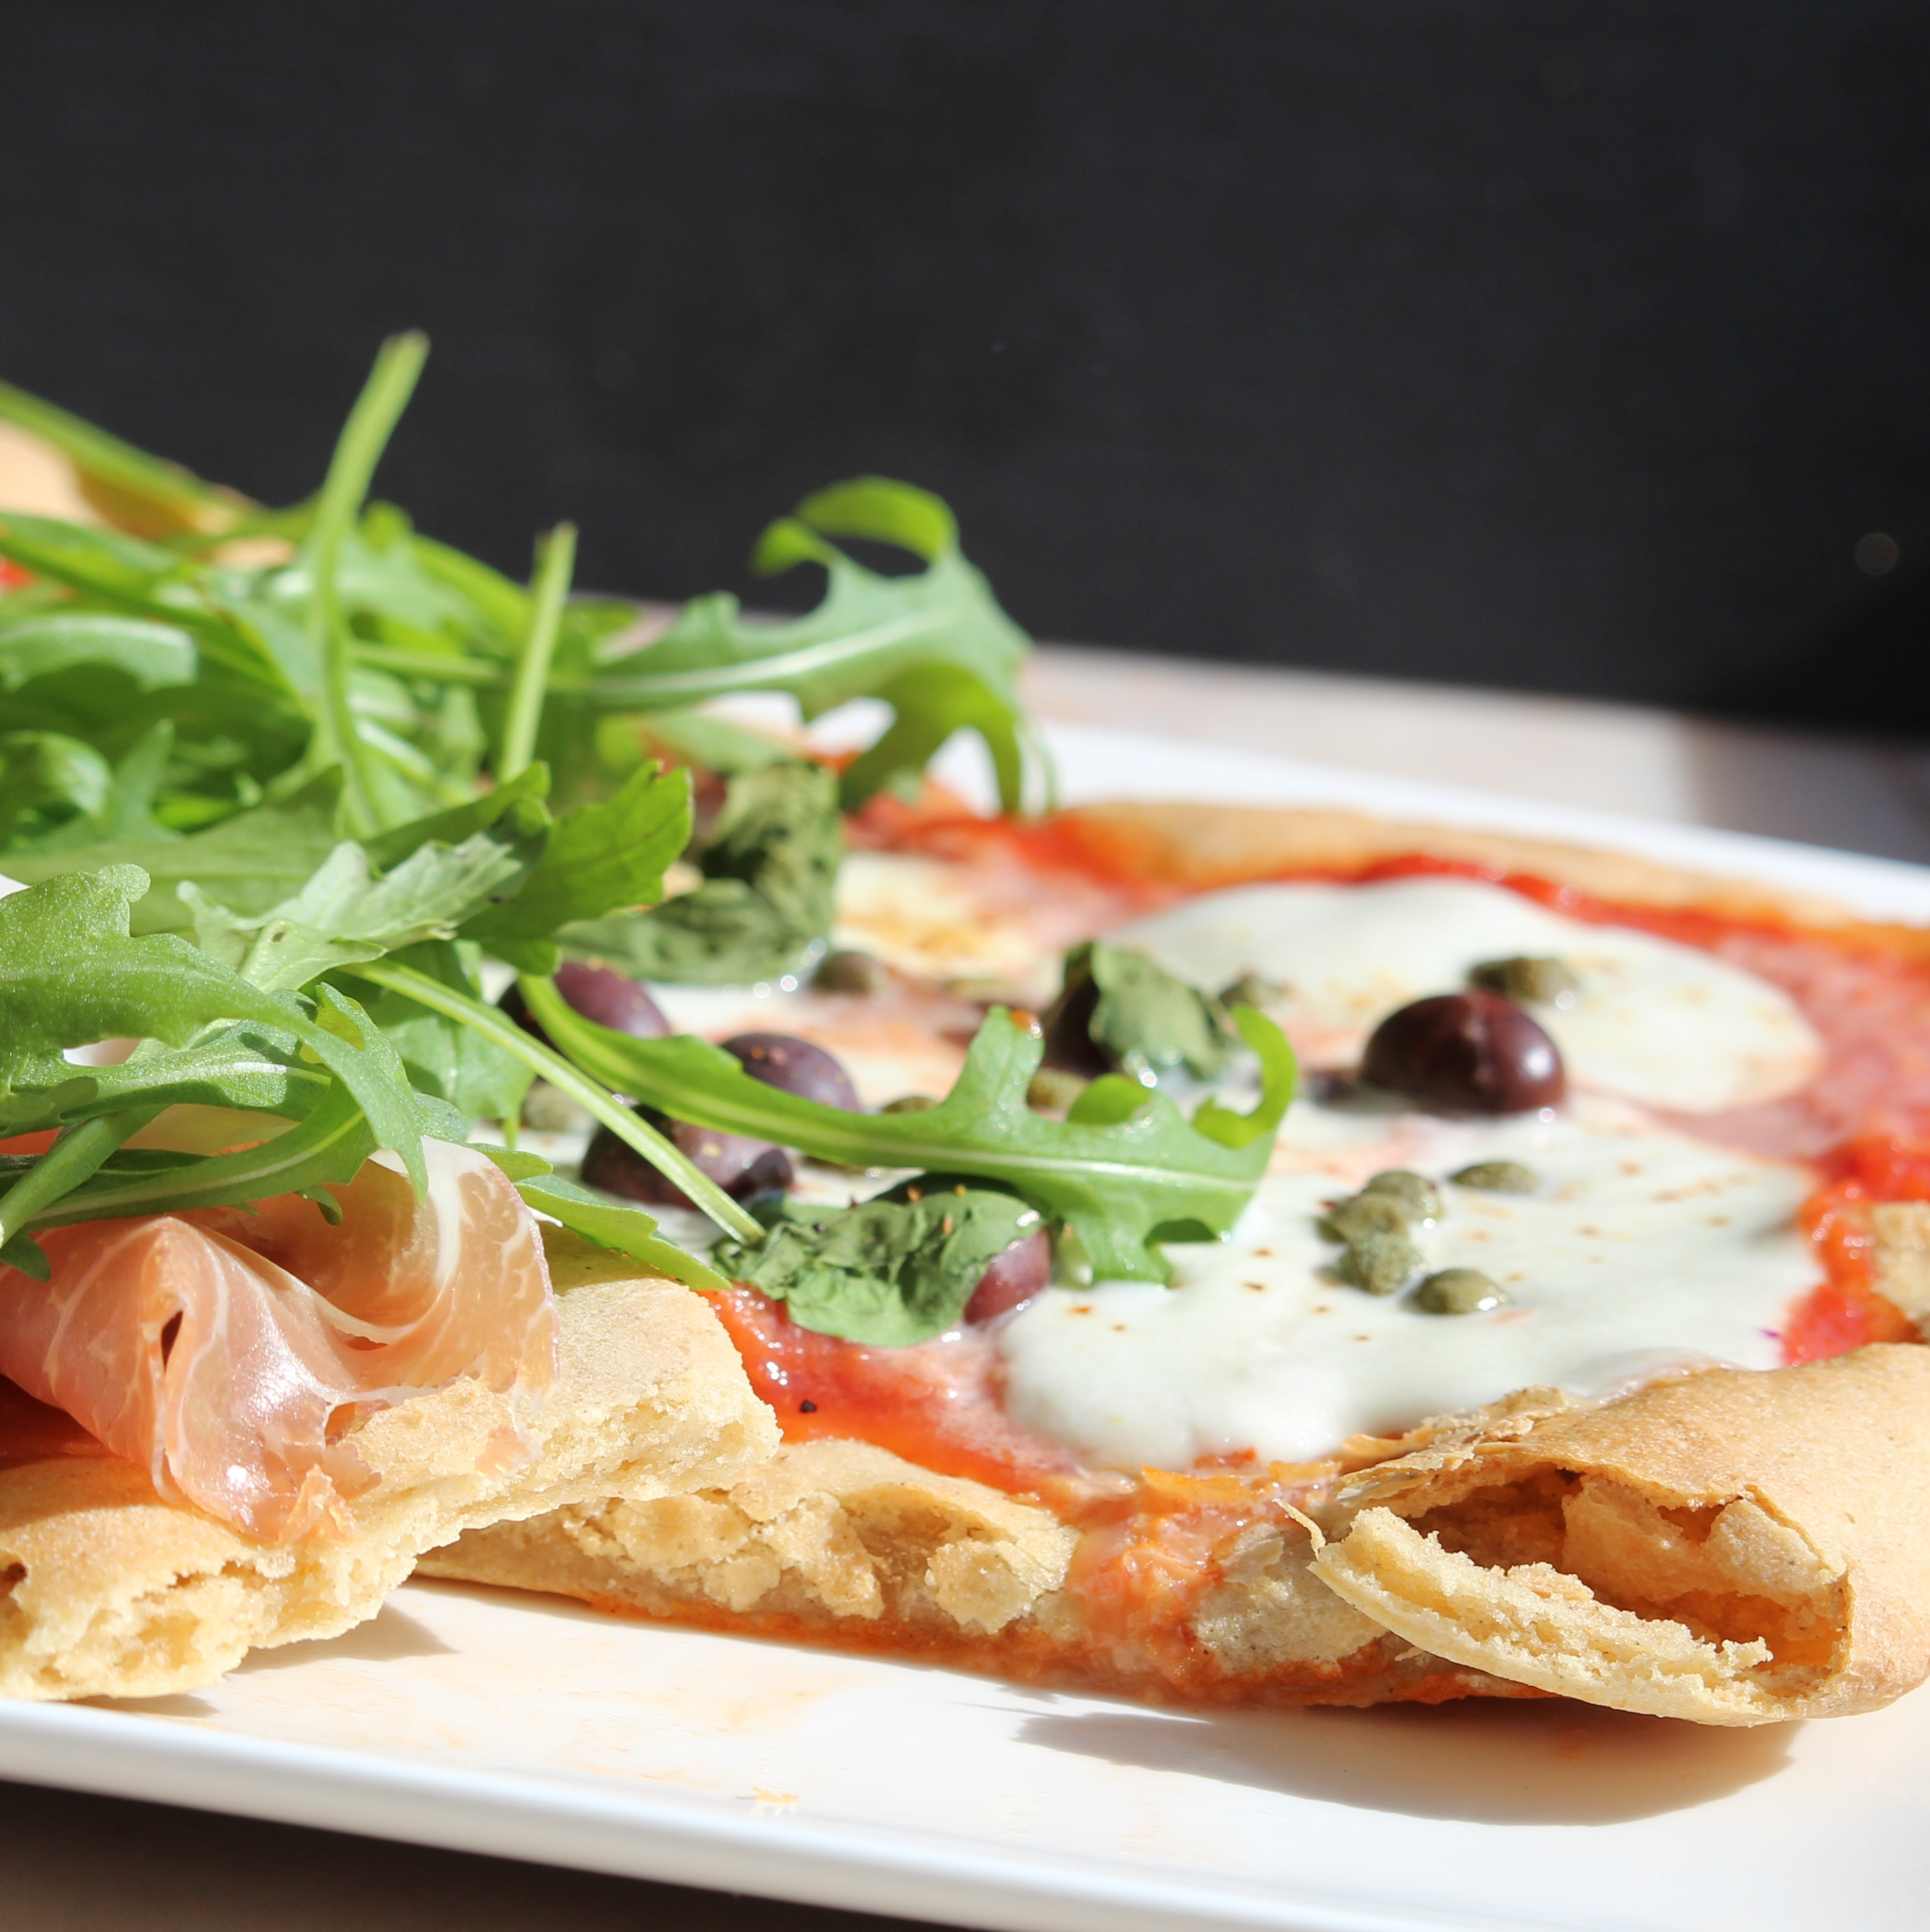 Gluten-Free Pizza Crust or Flatbread